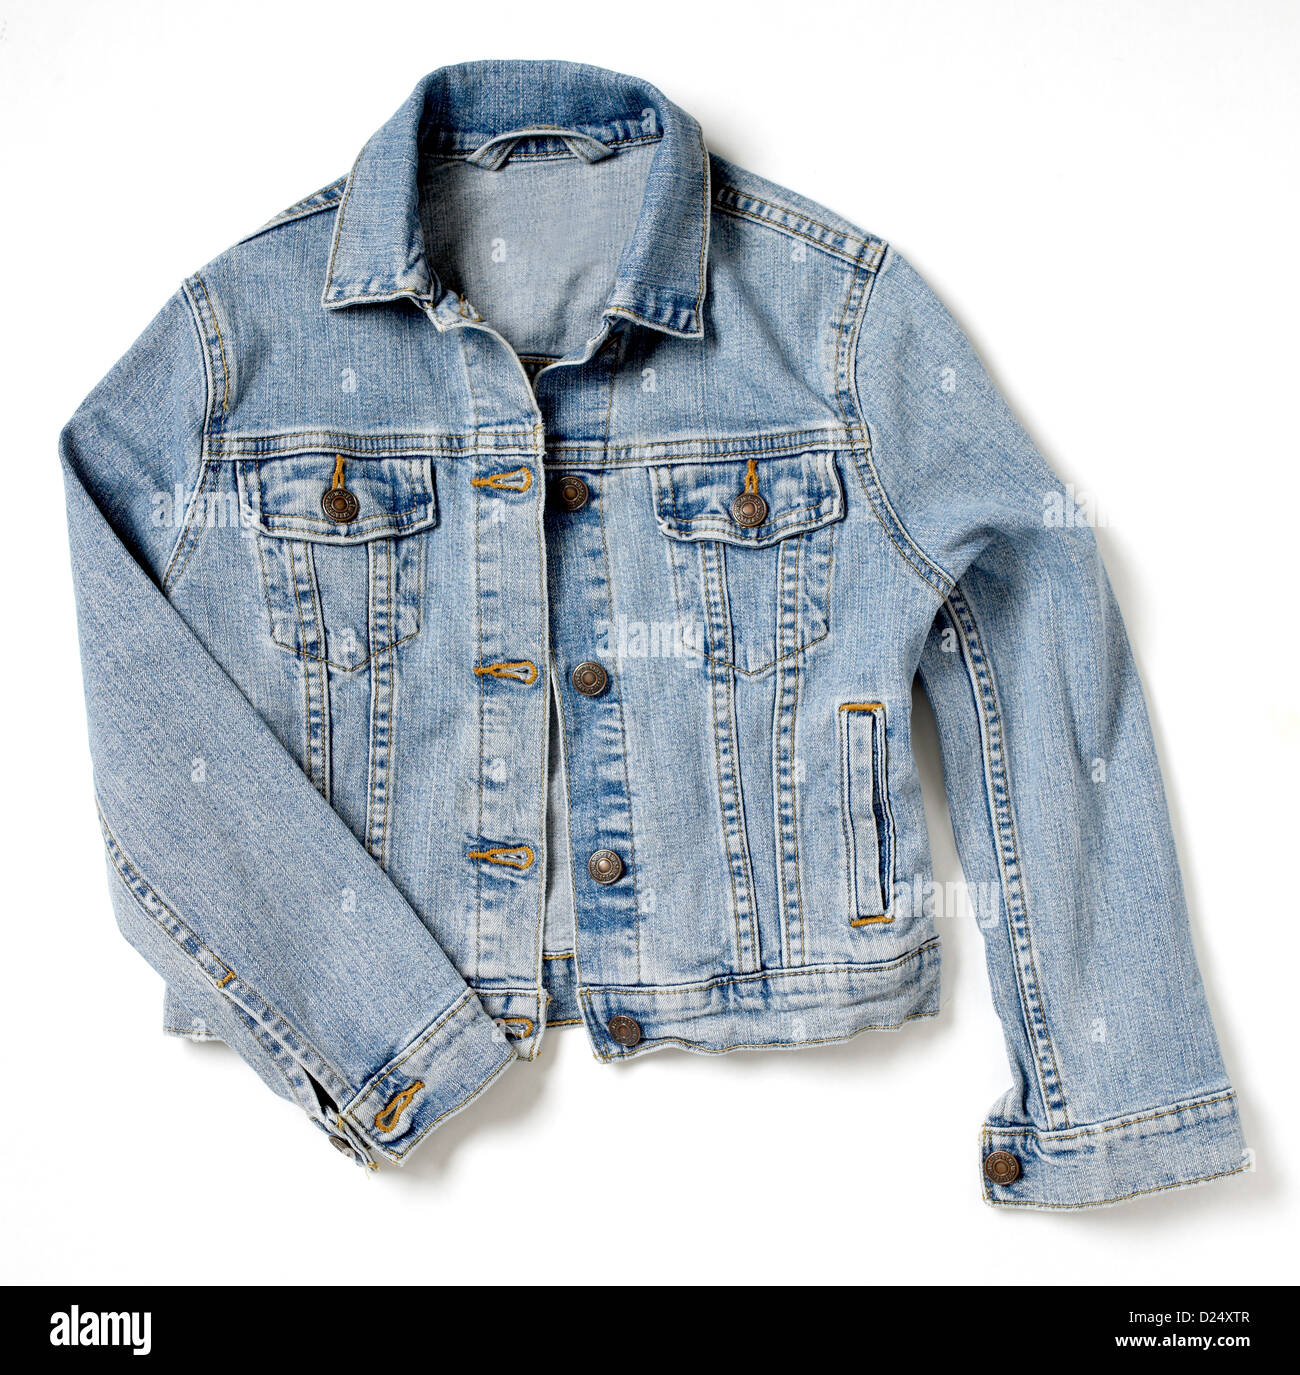 Denim jacket - Stock Image